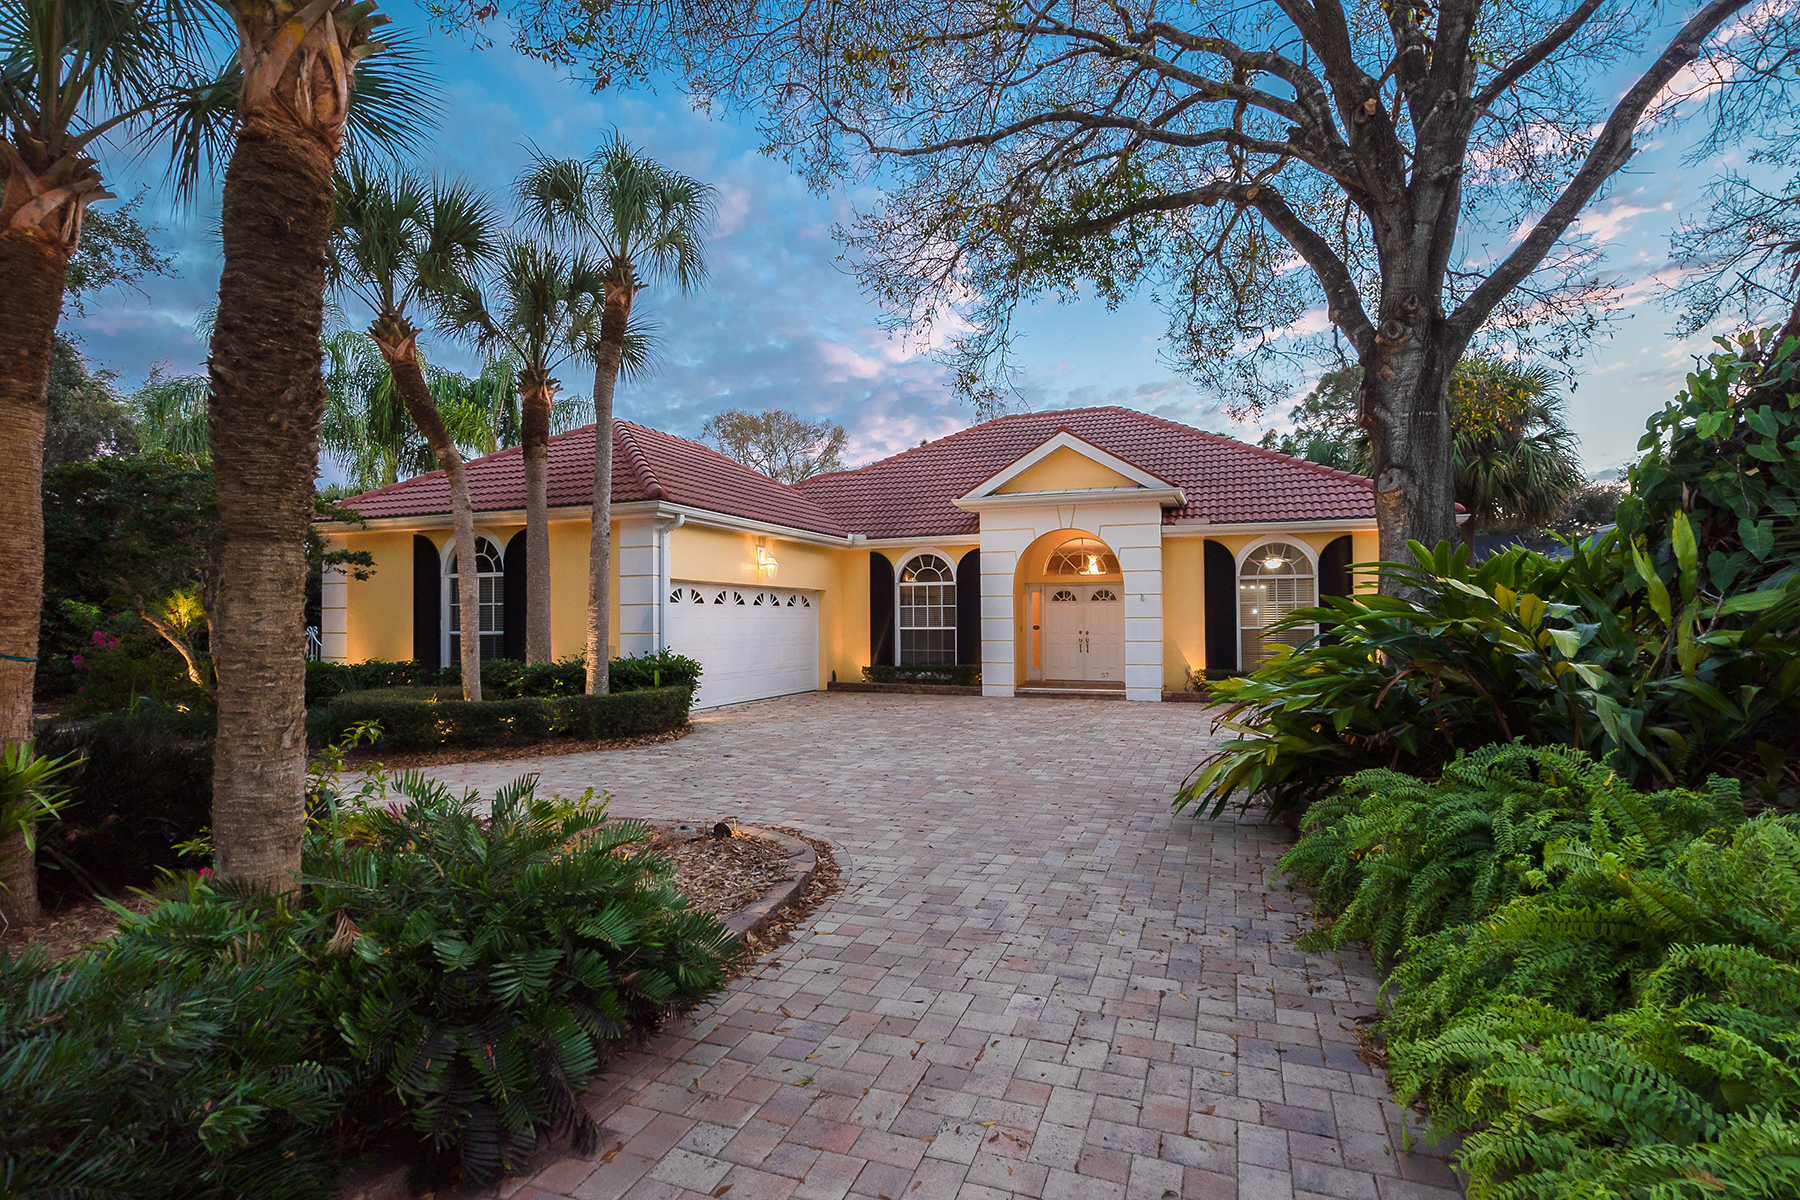 Single Family Homes for Sale at BOCA ROYALE 57 Golf View Dr, Englewood, Florida 34223 United States